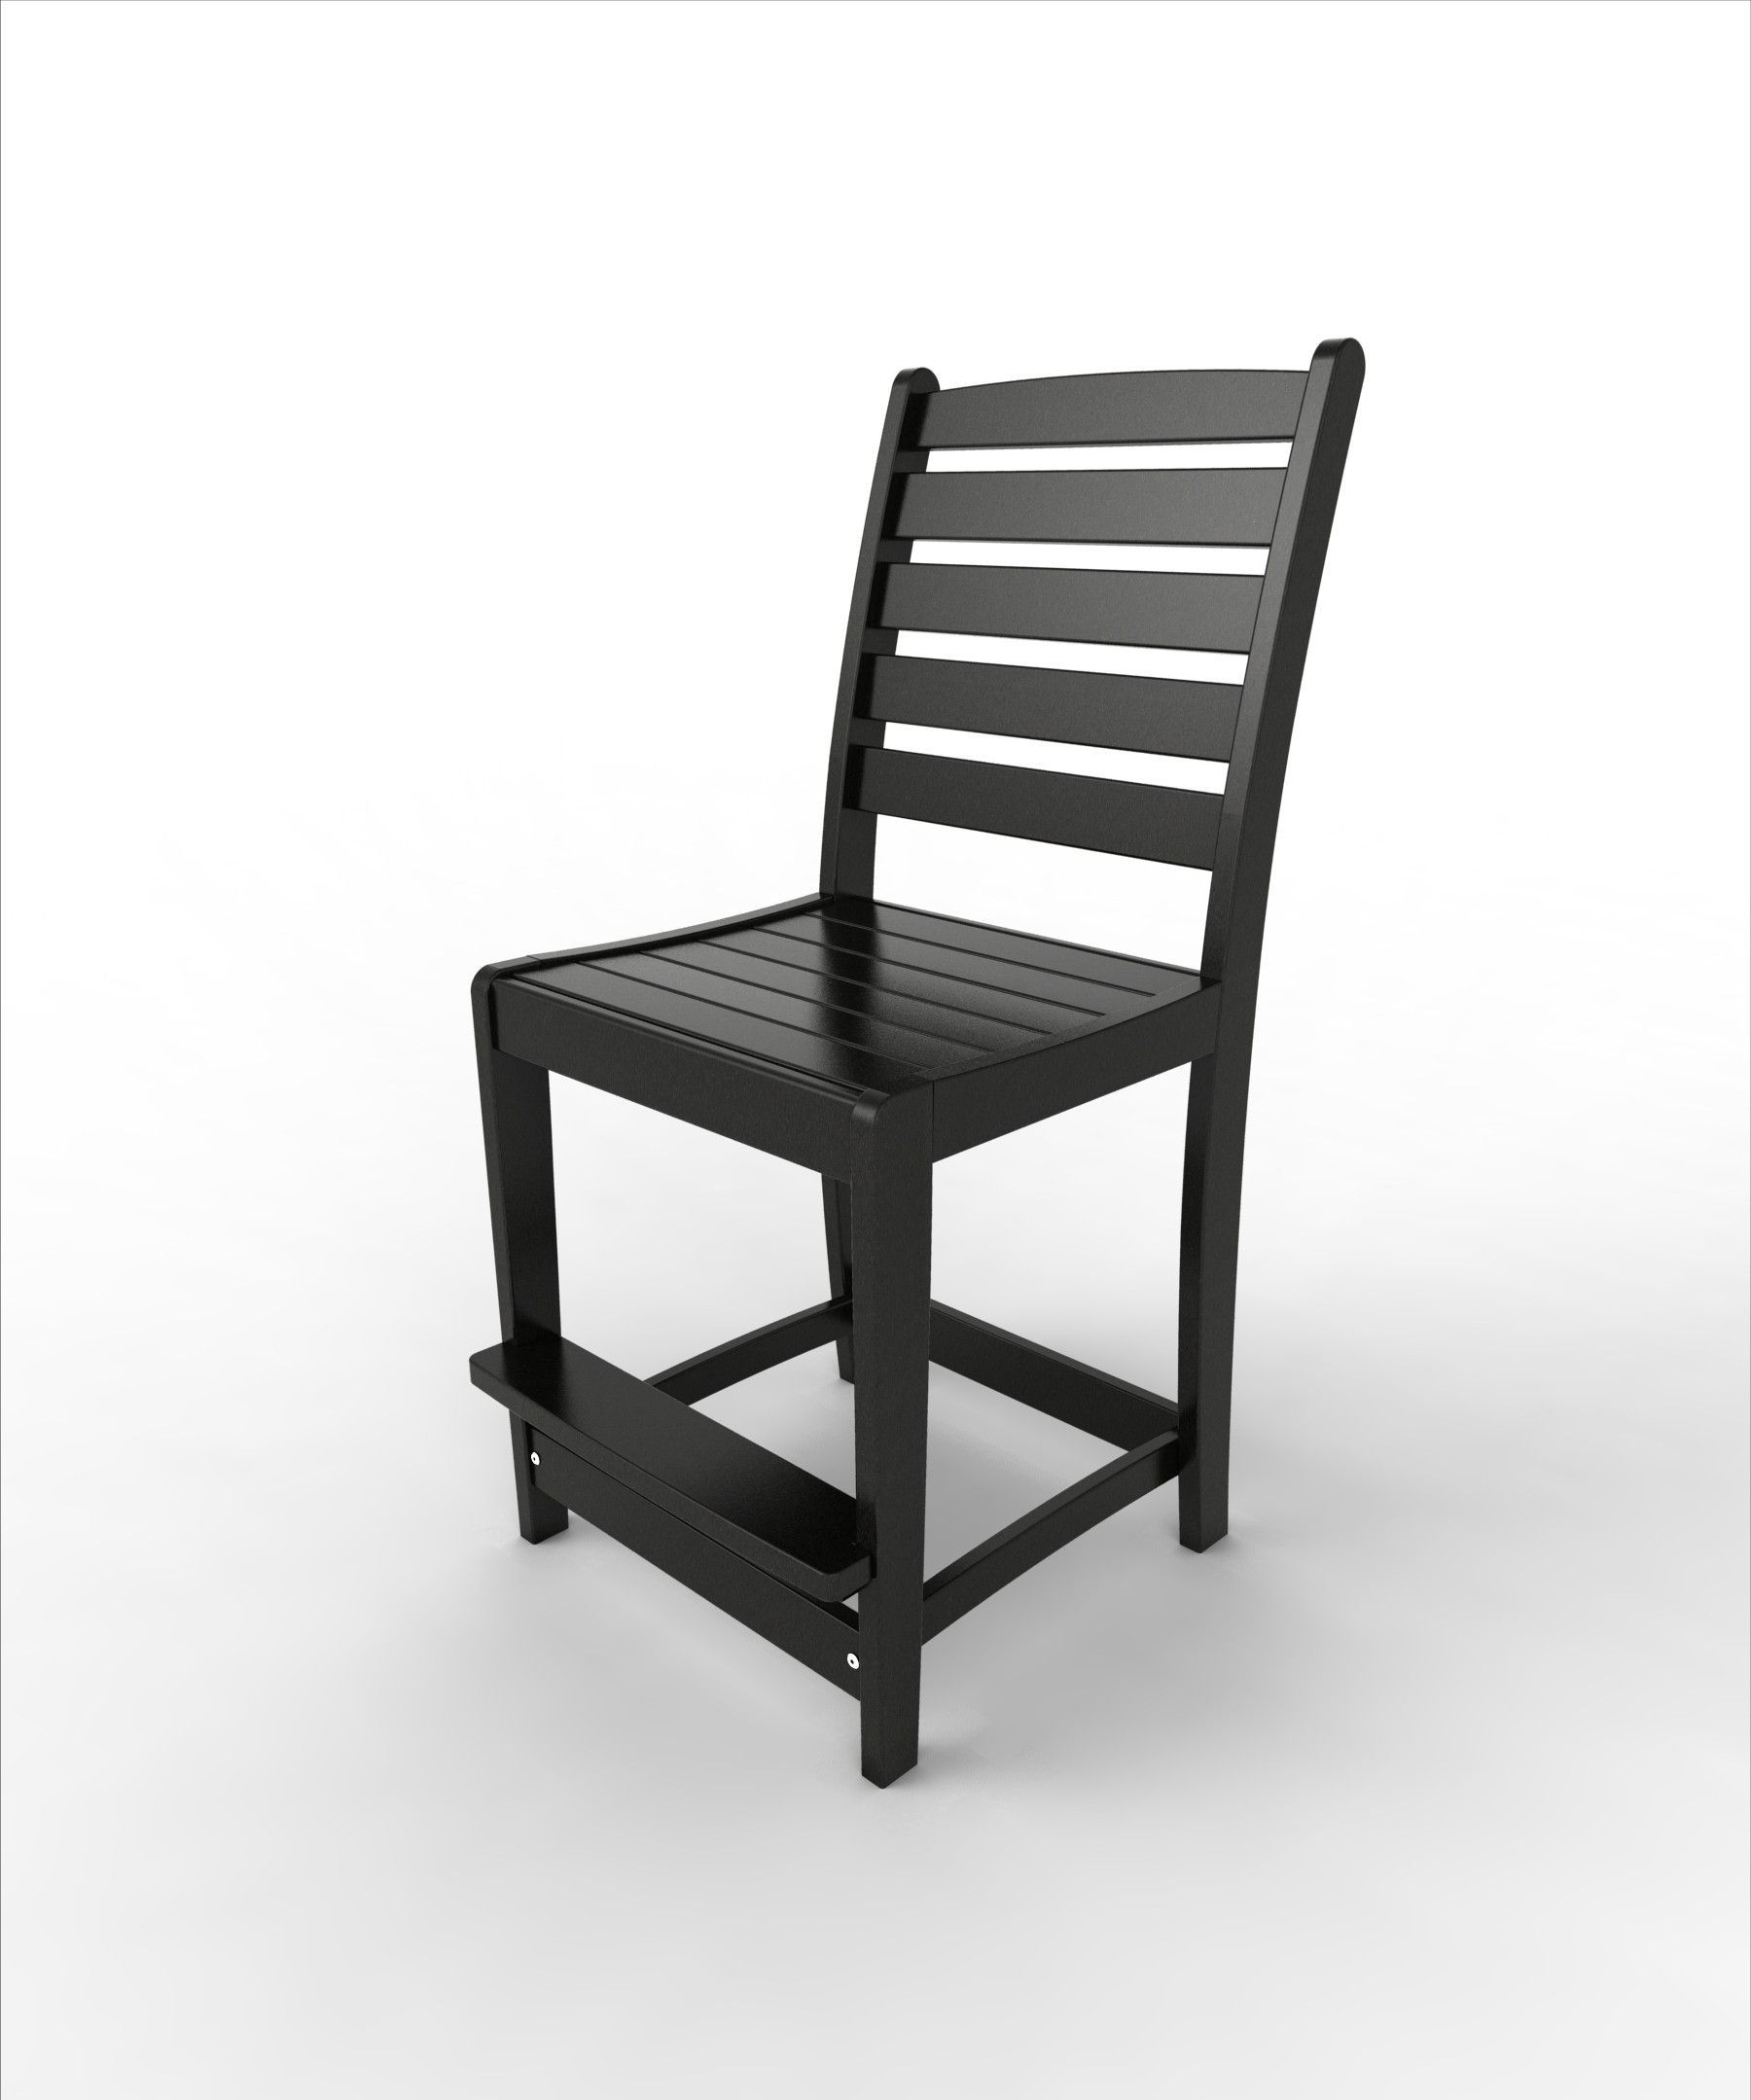 Malibu Outdoor Living Recycled Plastic Maywood Counter Side Chair